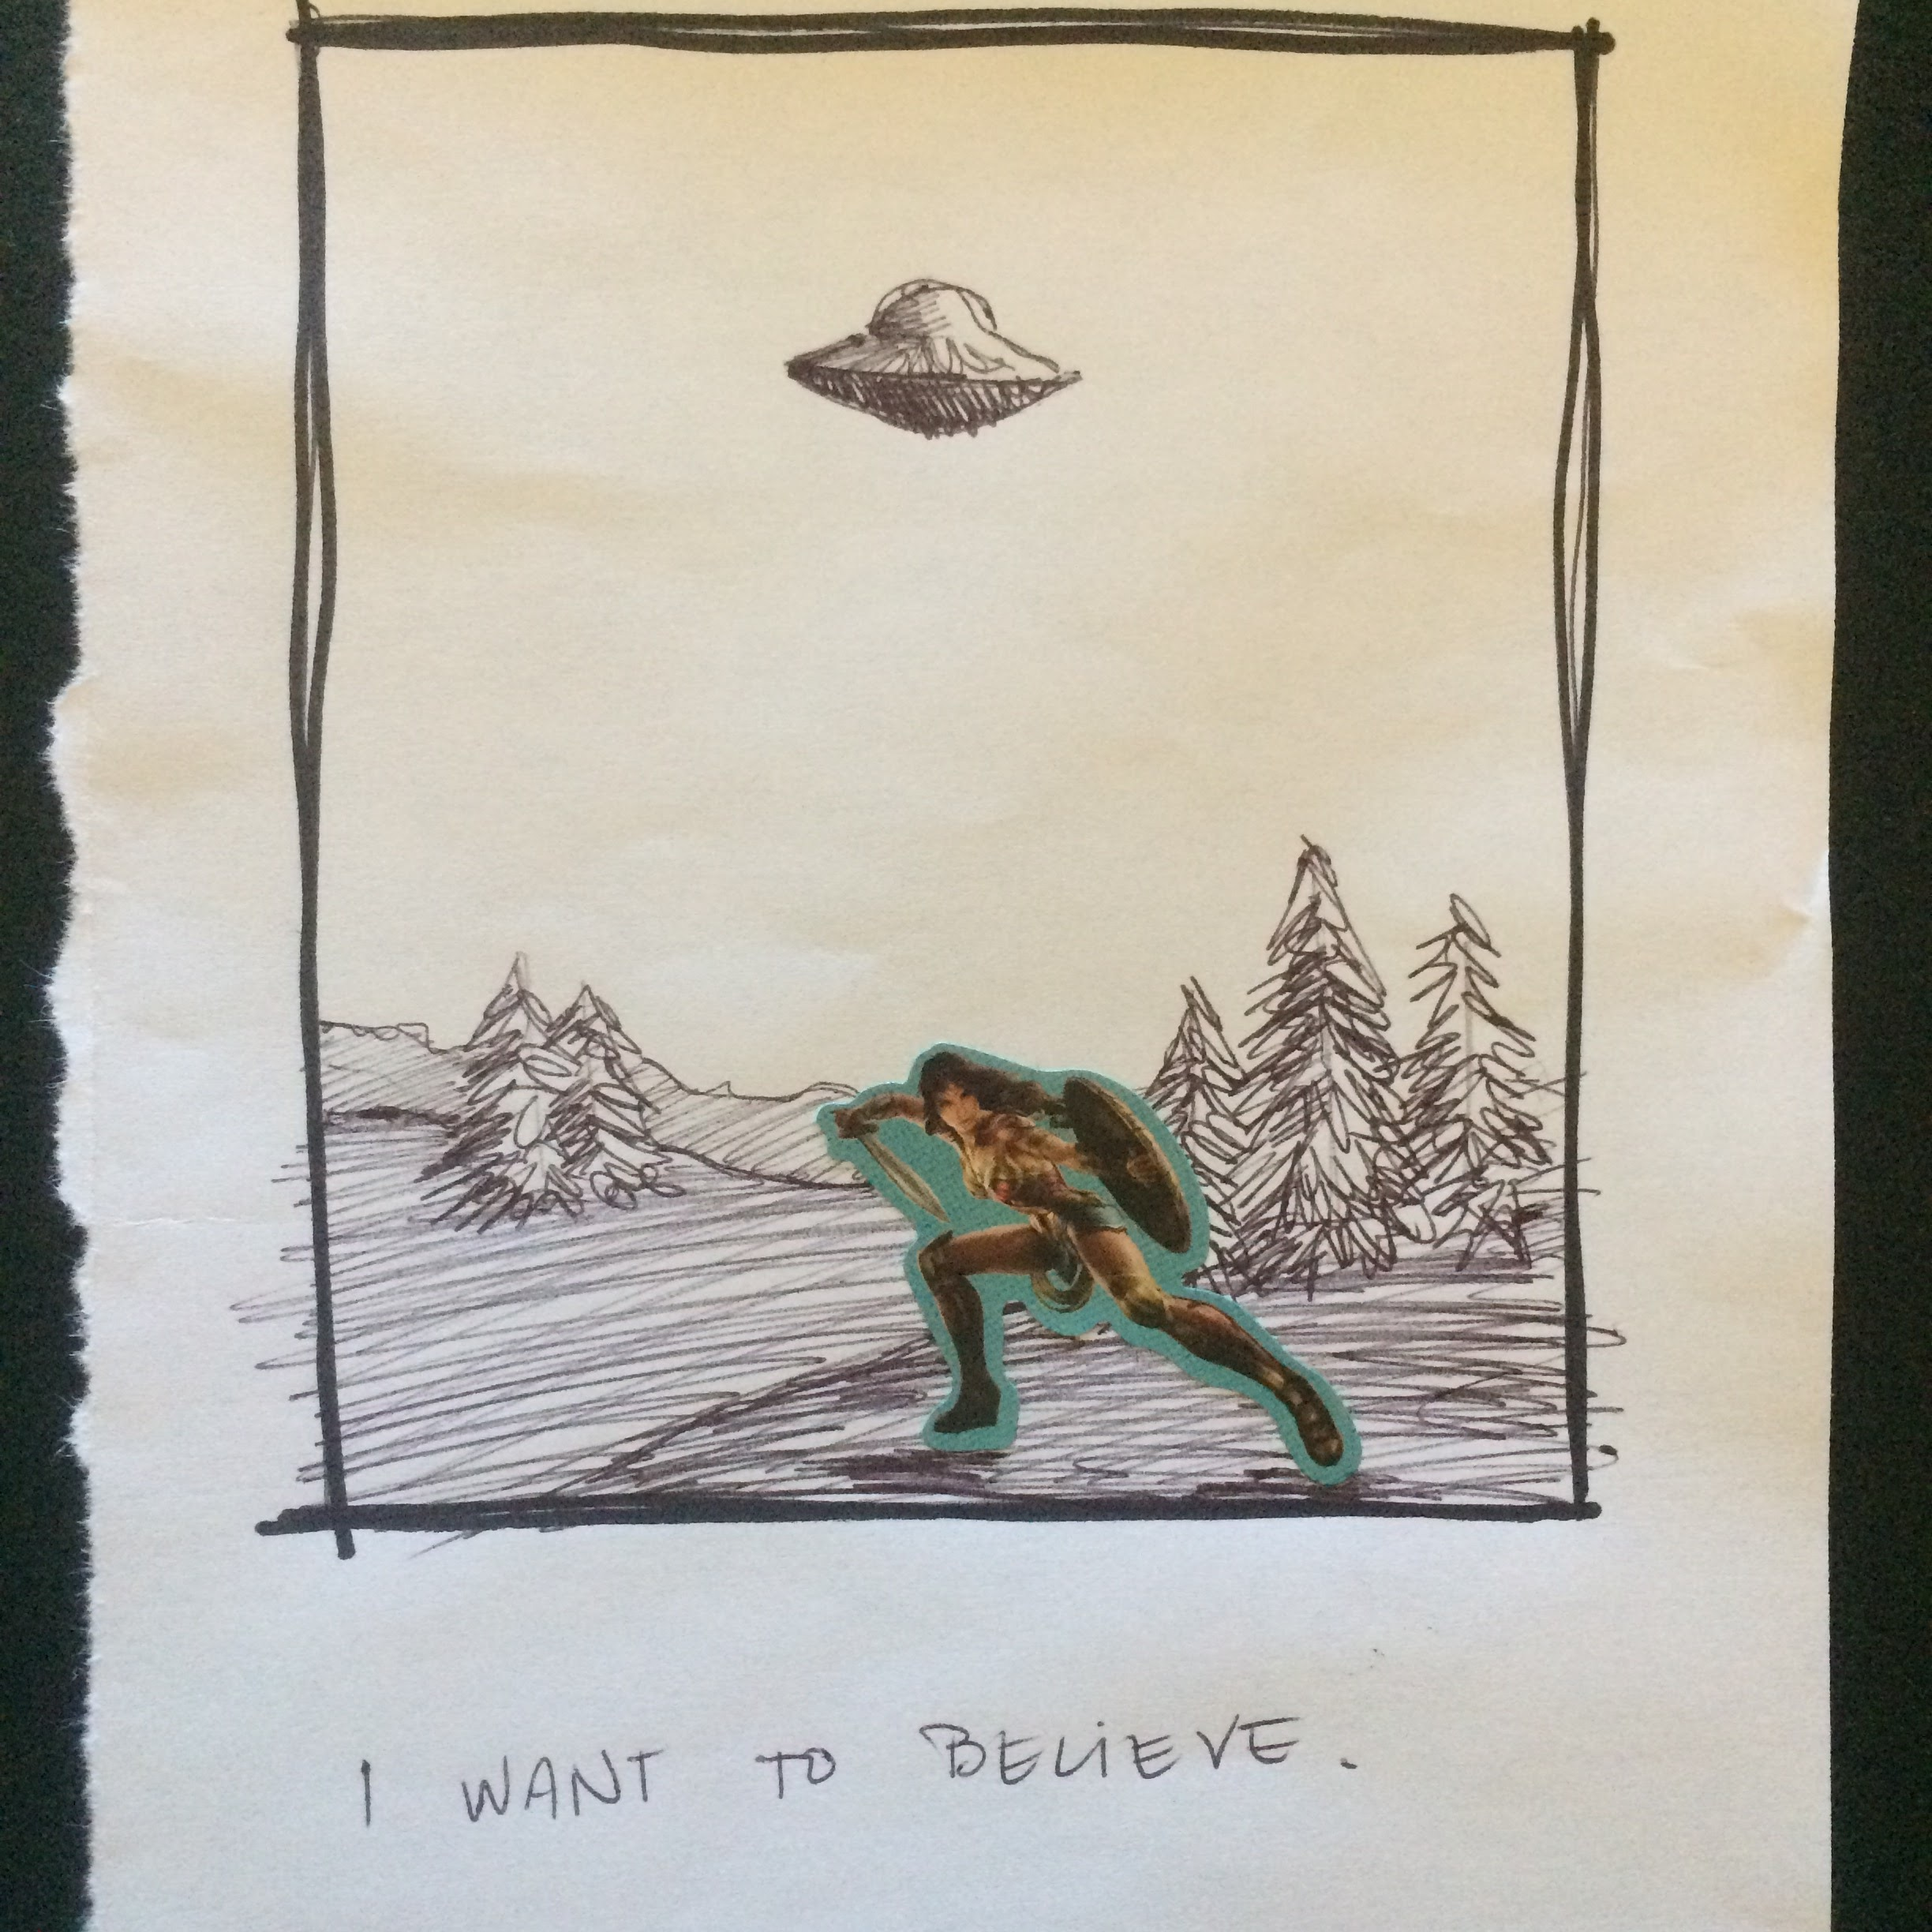 48. September 10, 2017 - I want to believe.